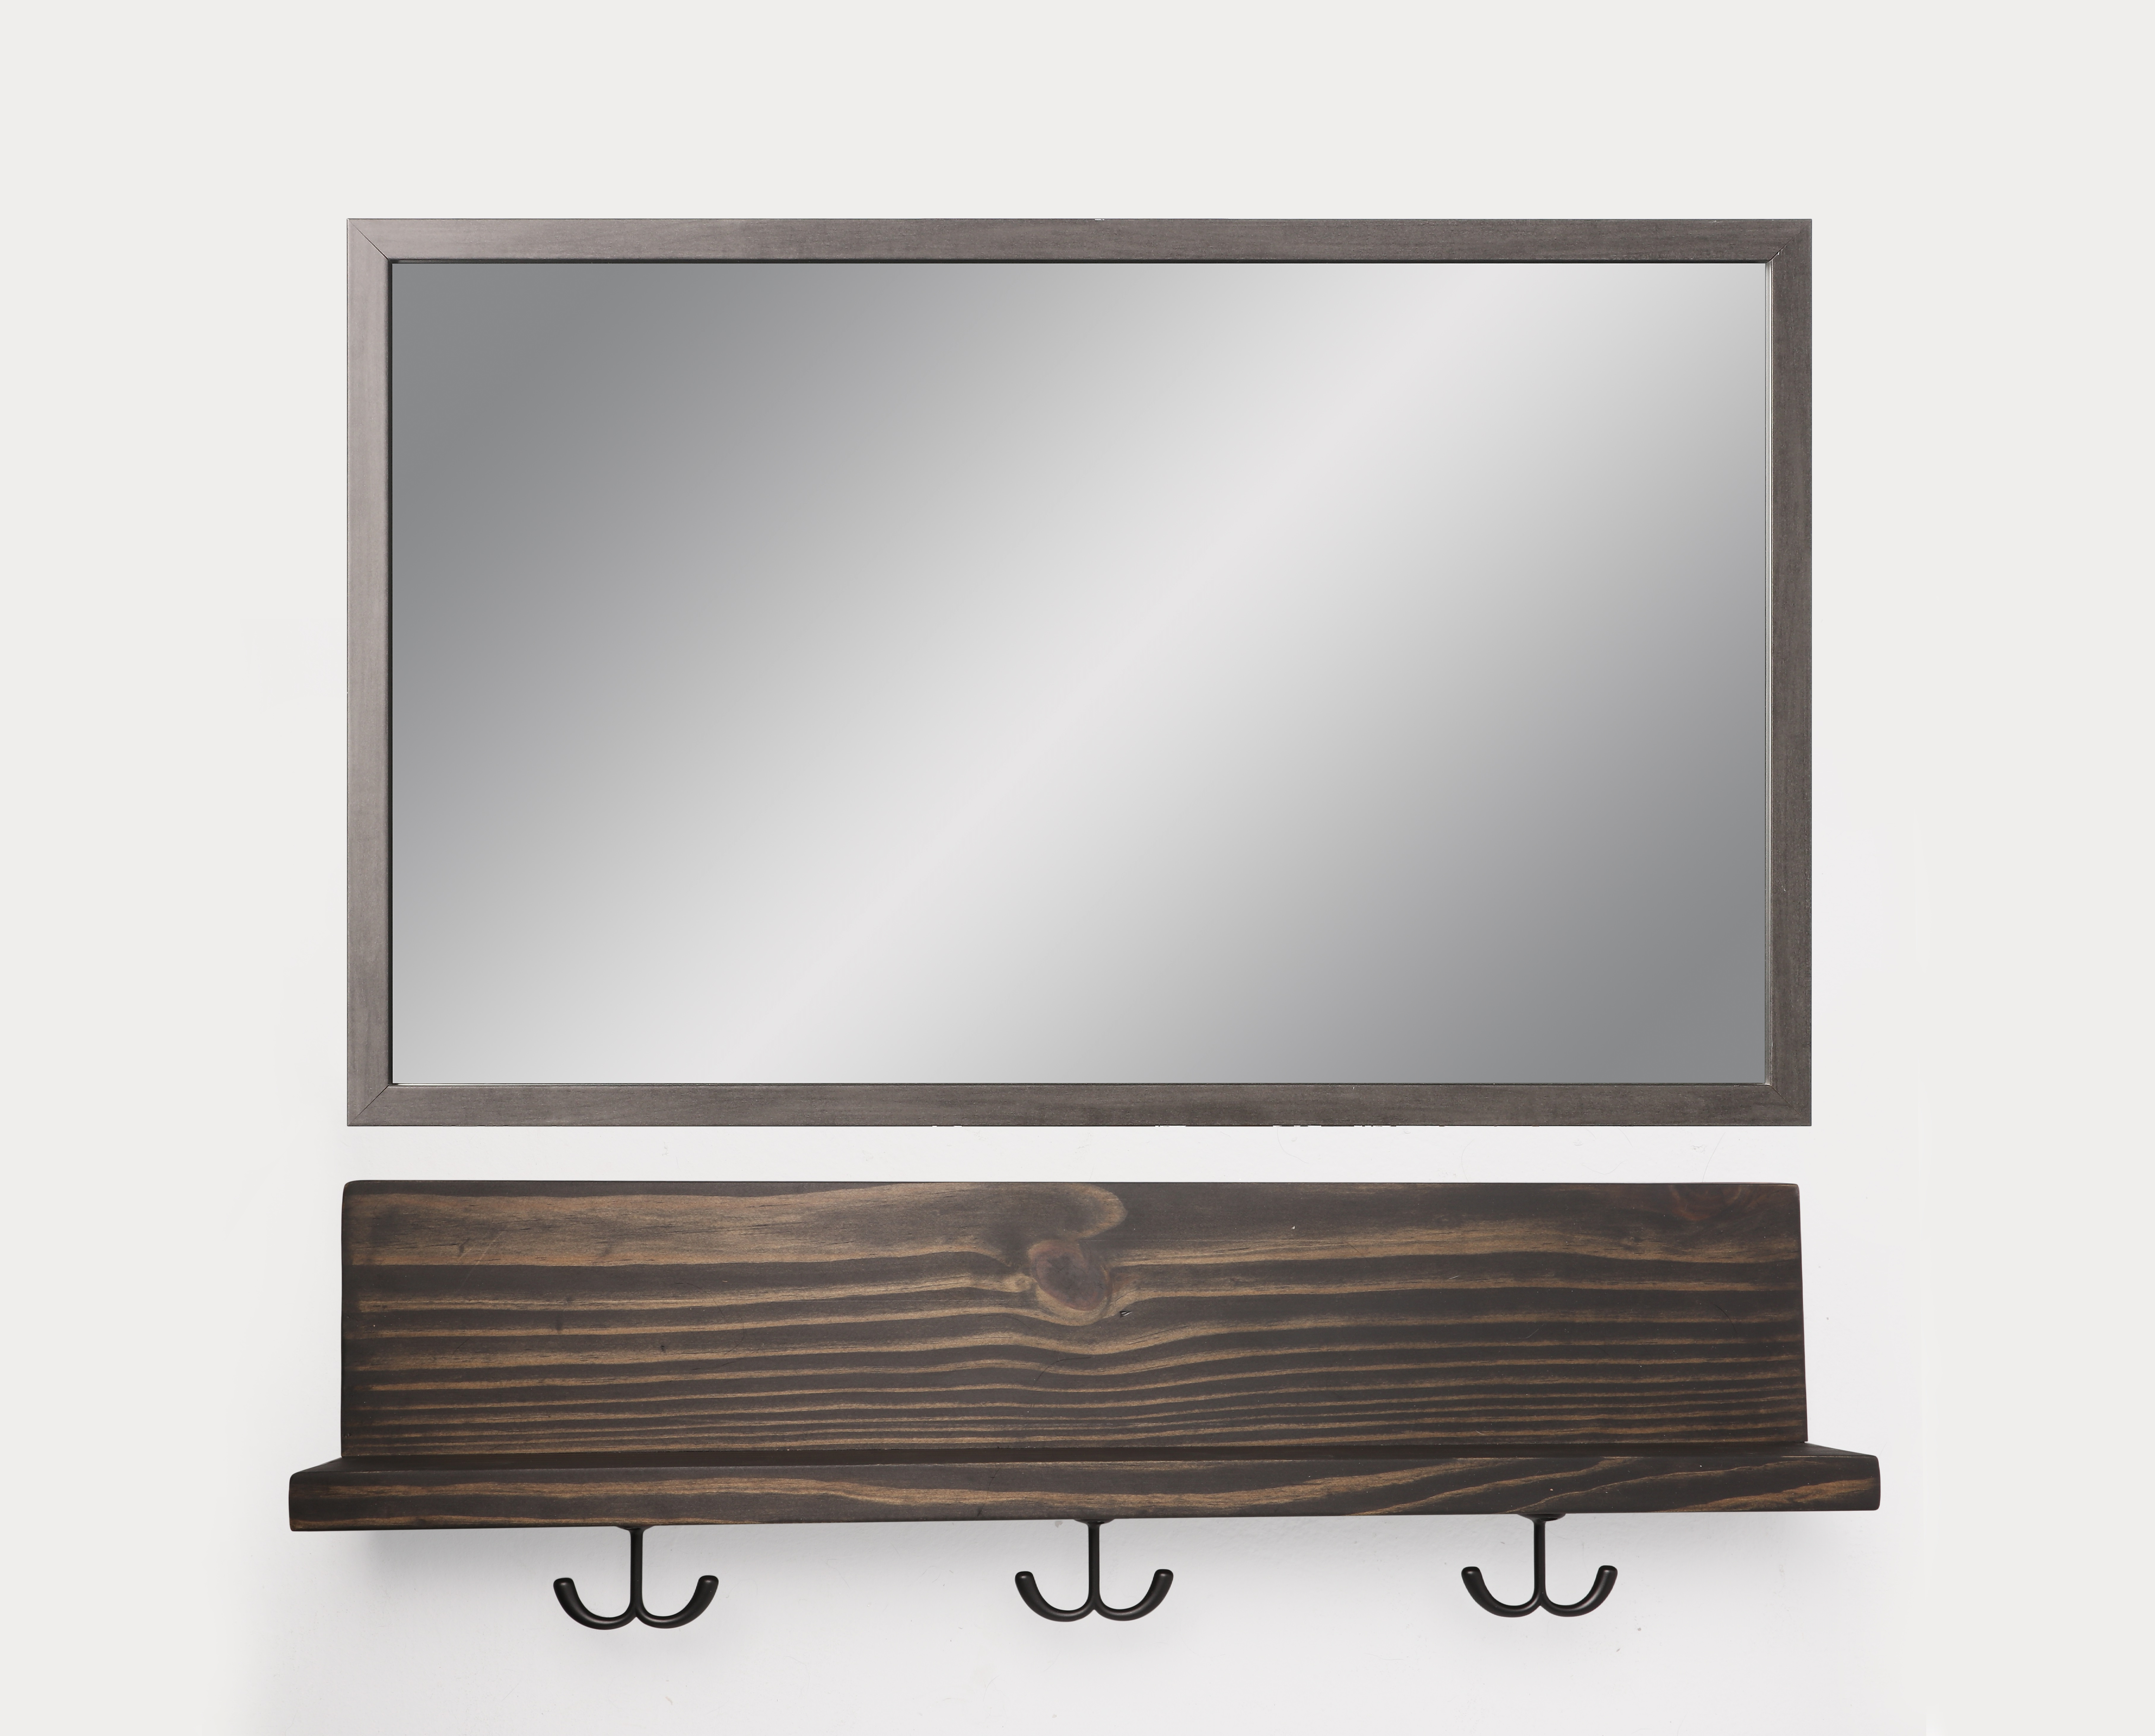 Well Known Details About Floating Black Wall Shelf With Black Utility Hooks And Gray Mirror Regarding Wall Mirrors With Hooks And Shelf (View 20 of 20)